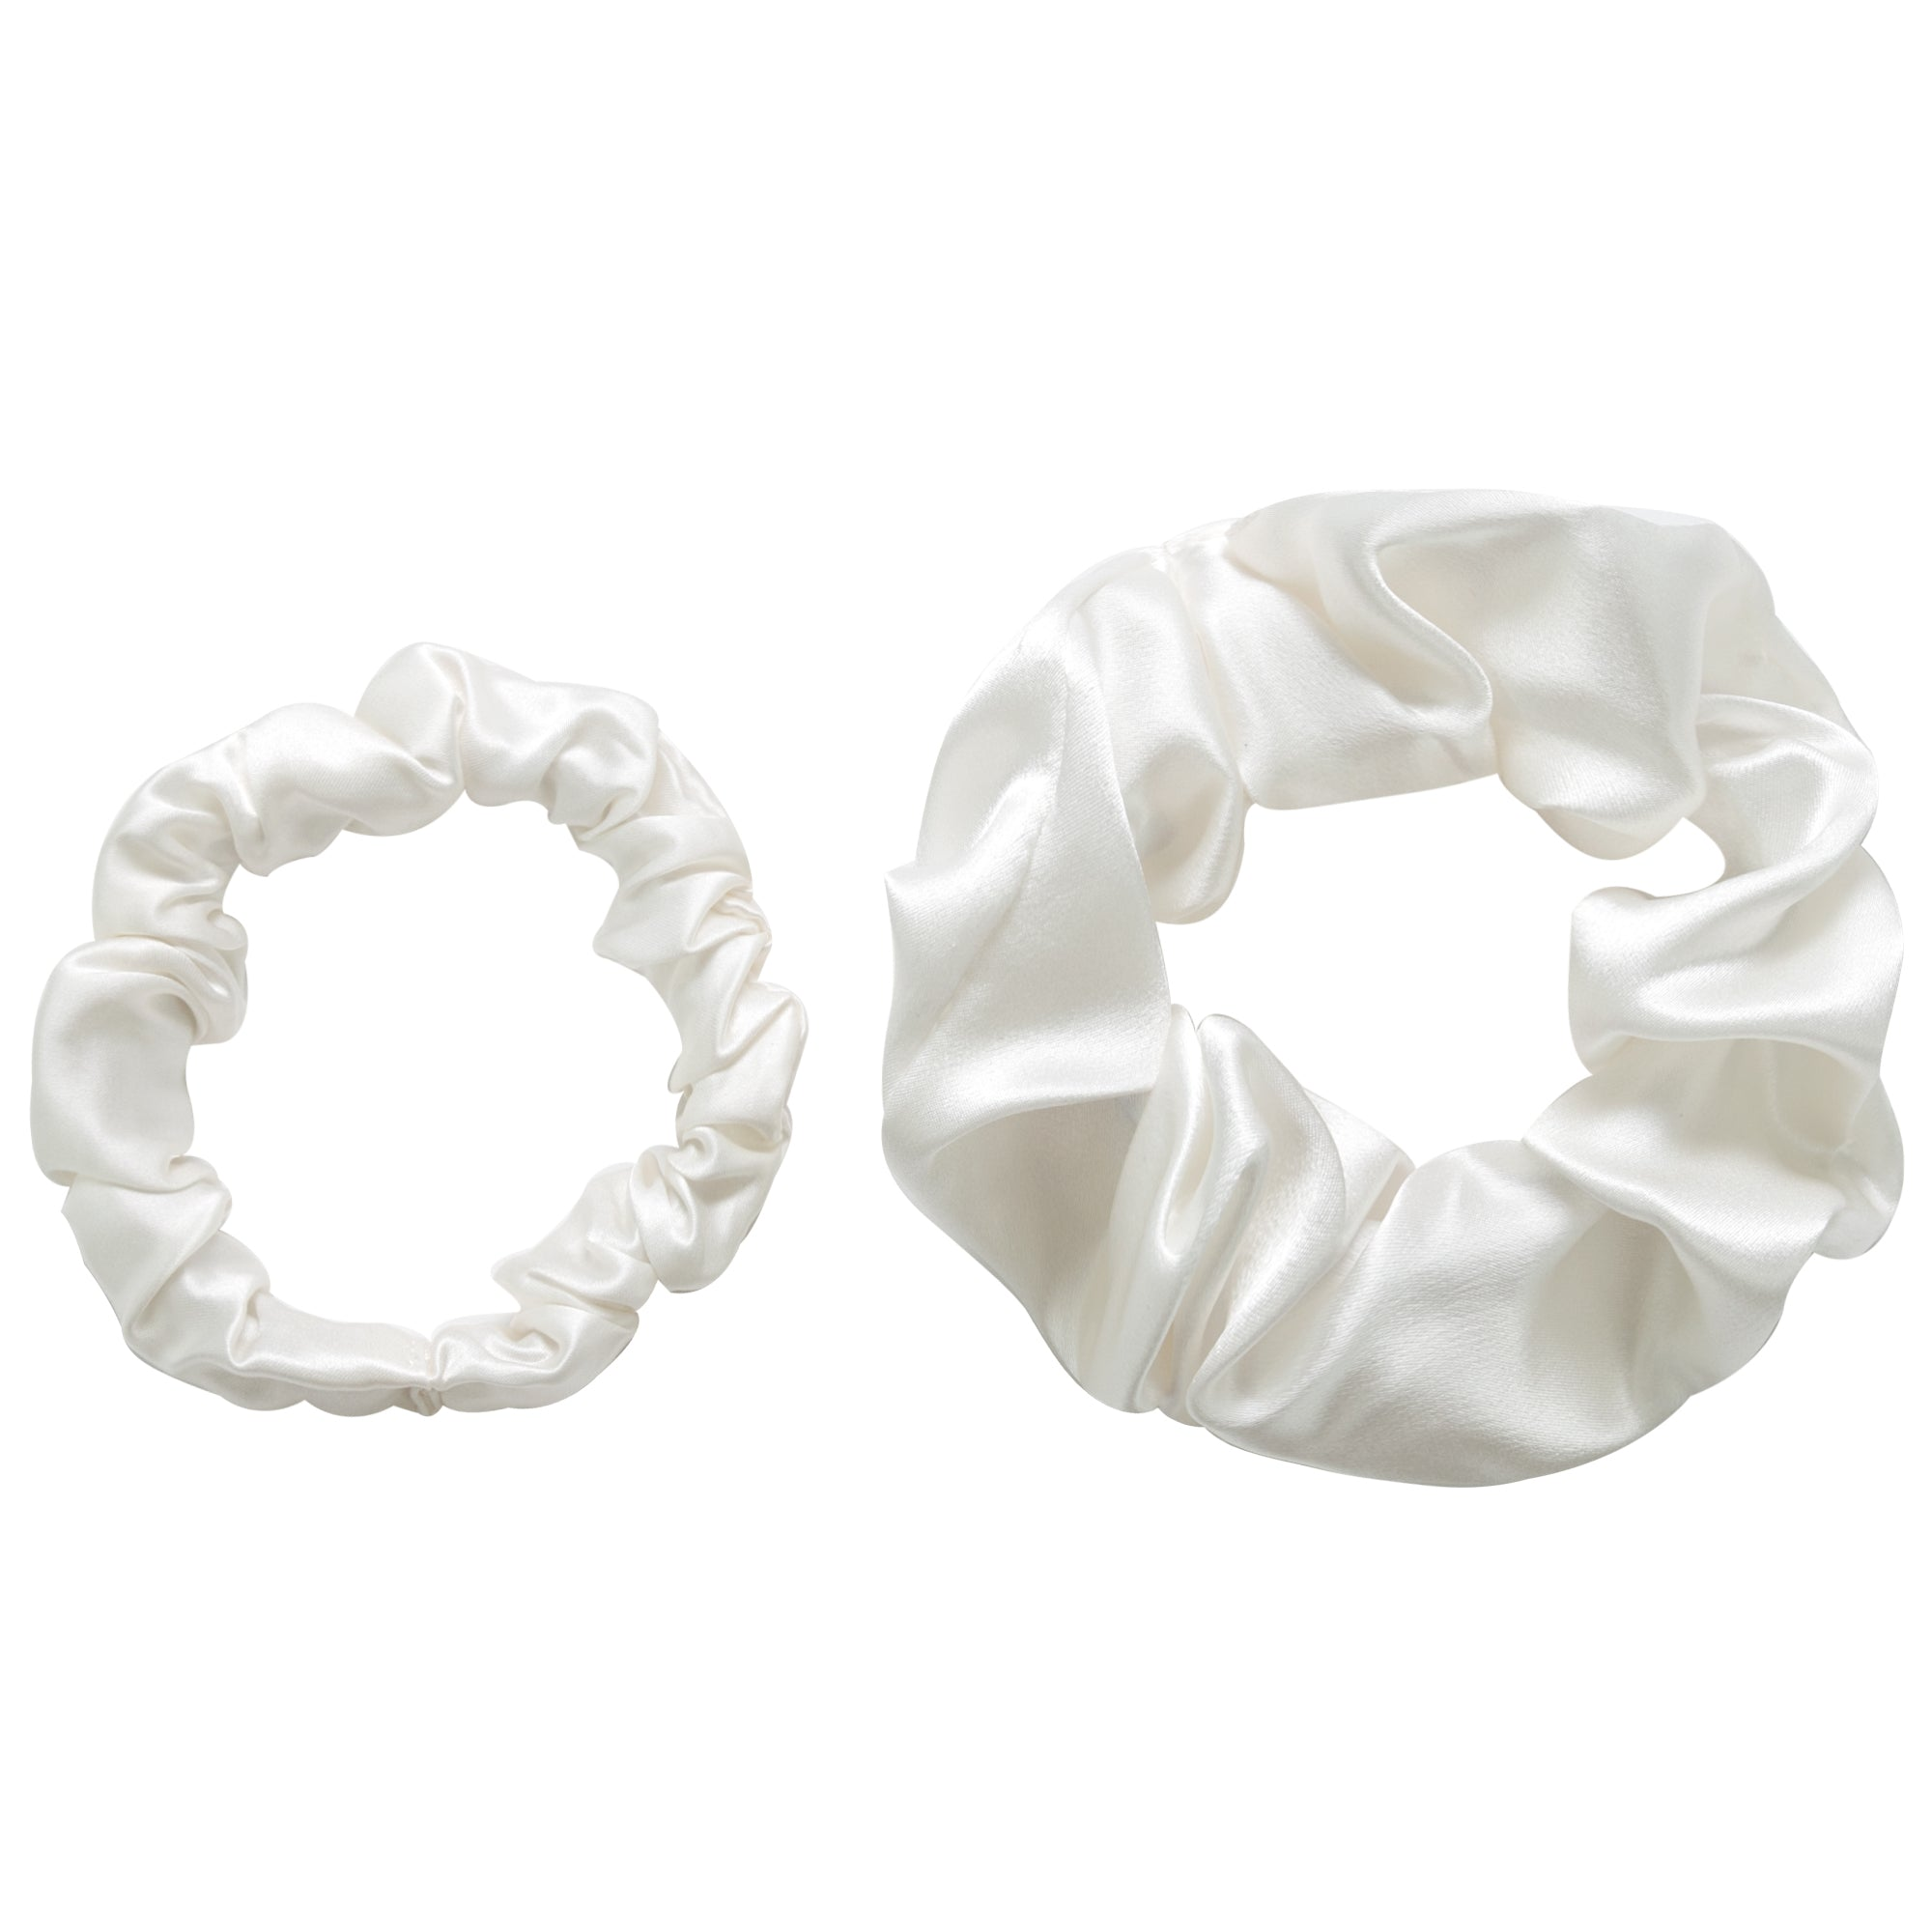 Hannah Grace Pure Silk Scrunchie Pack for hair - 1 thick 1 thin scrunchies black - Holds hair without damage, no snags, anti-pulling (Black